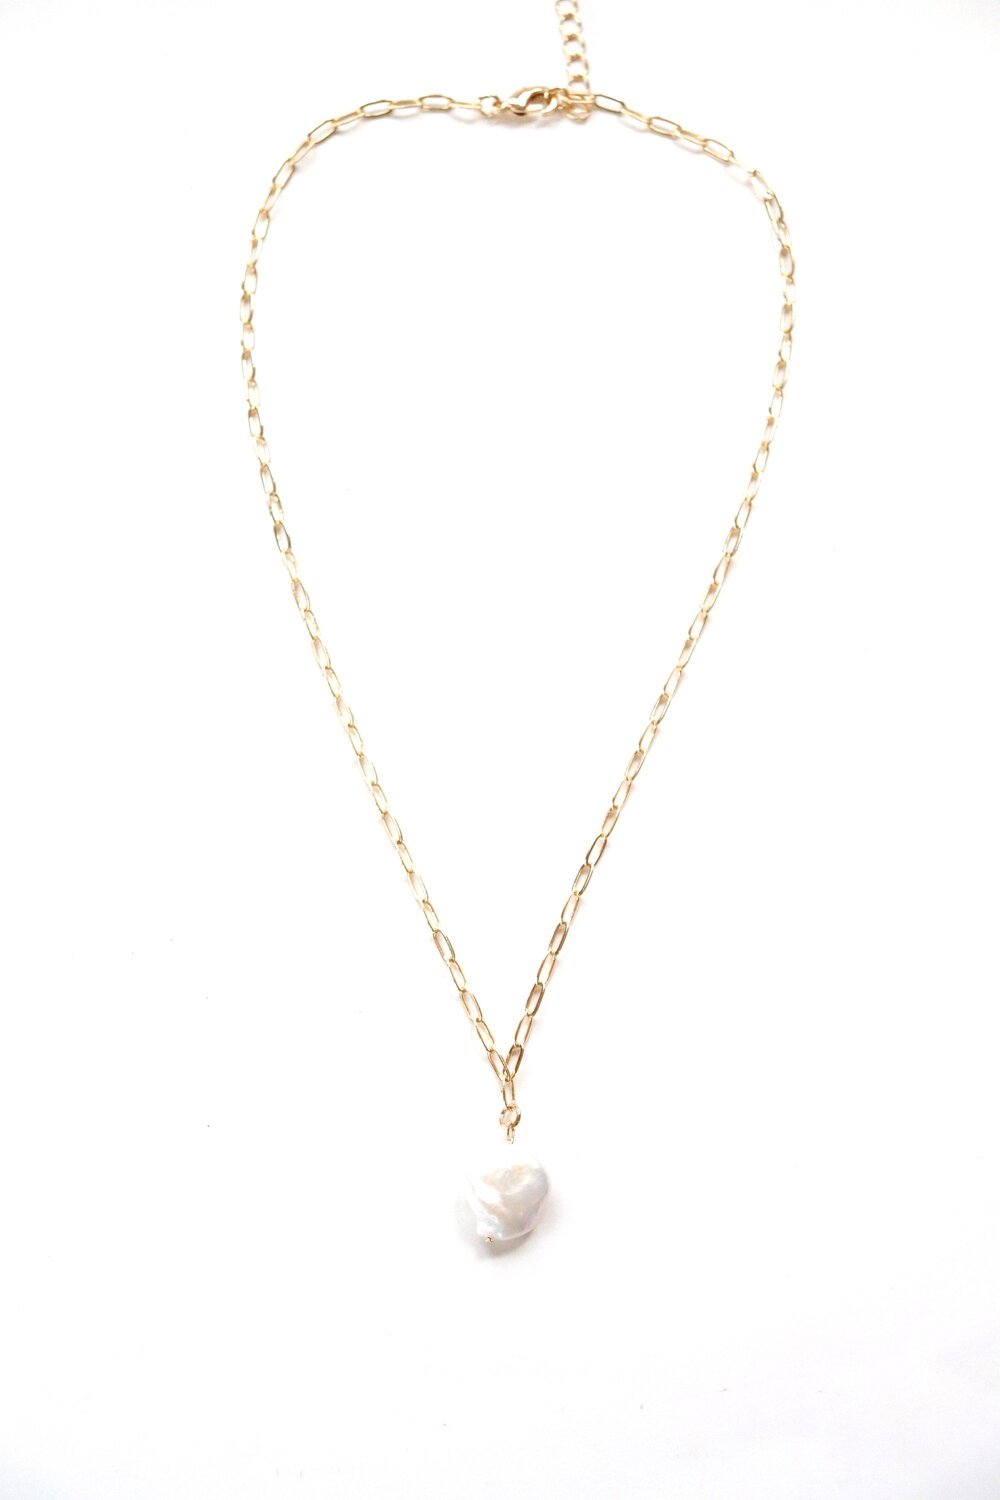 "Gold 18.5"" Chain Necklace With a Pearl"